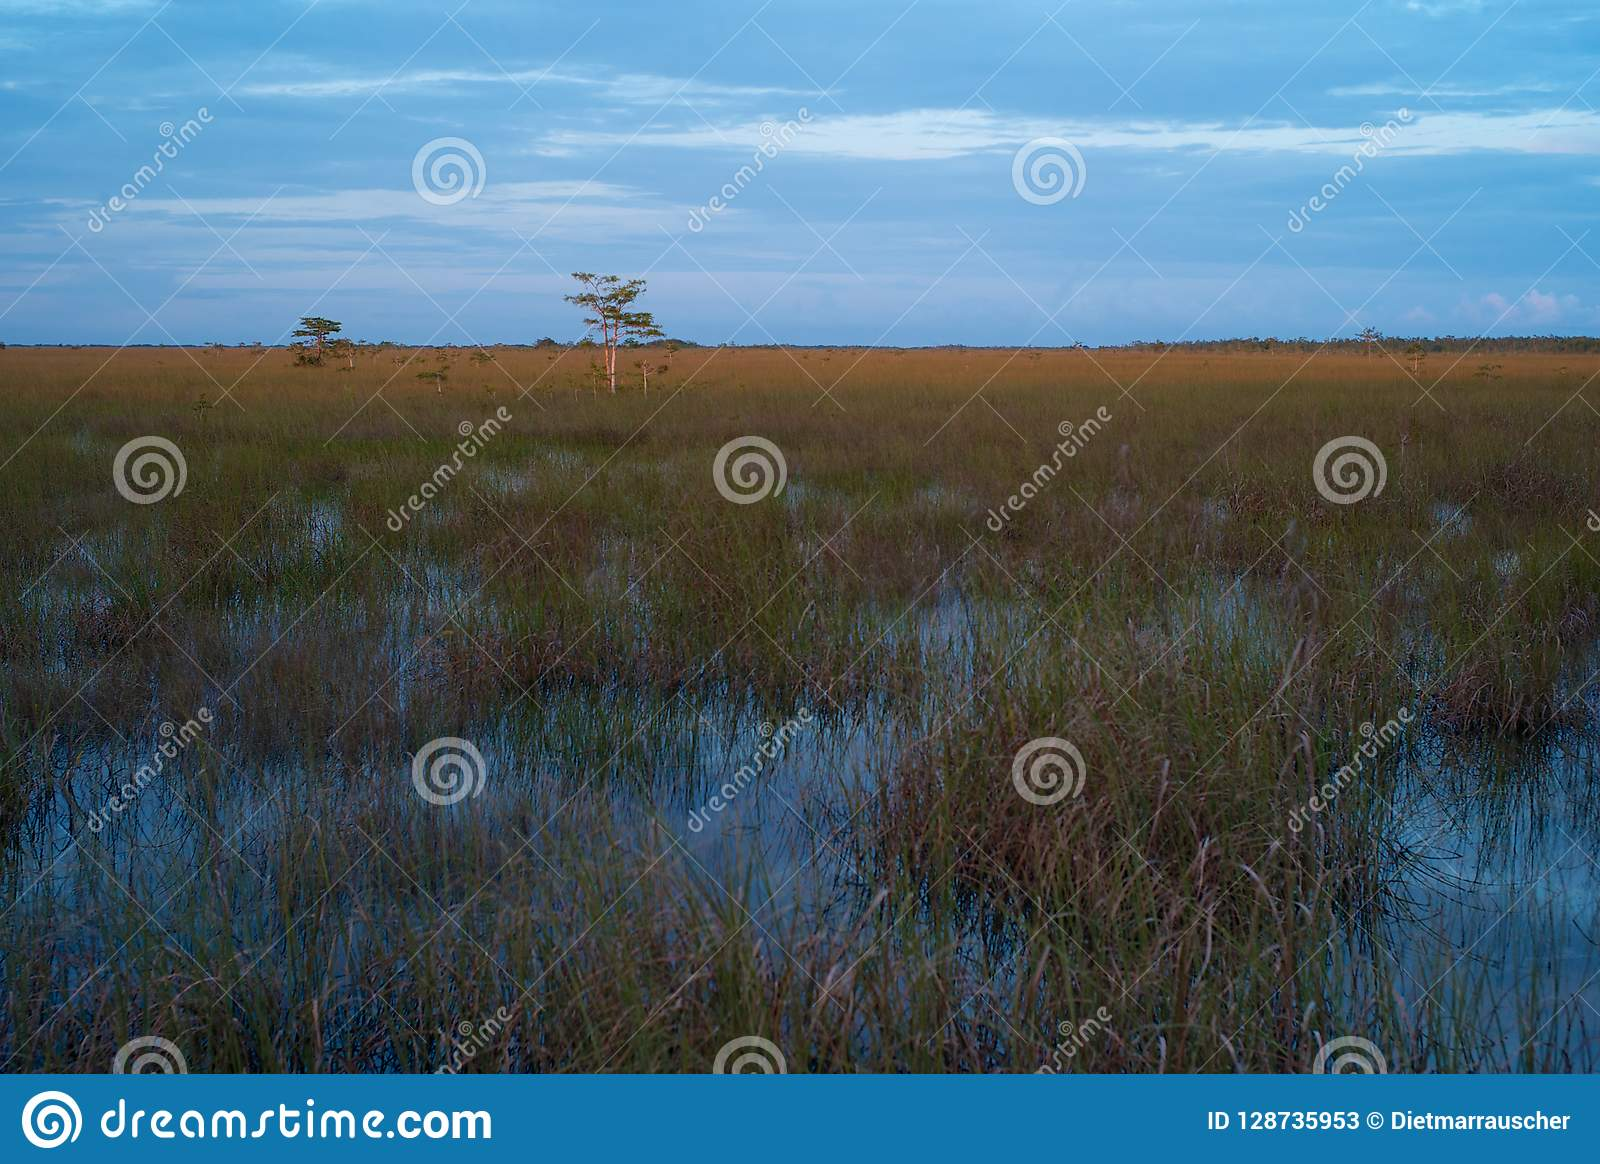 Evening Landscape of the Everglades